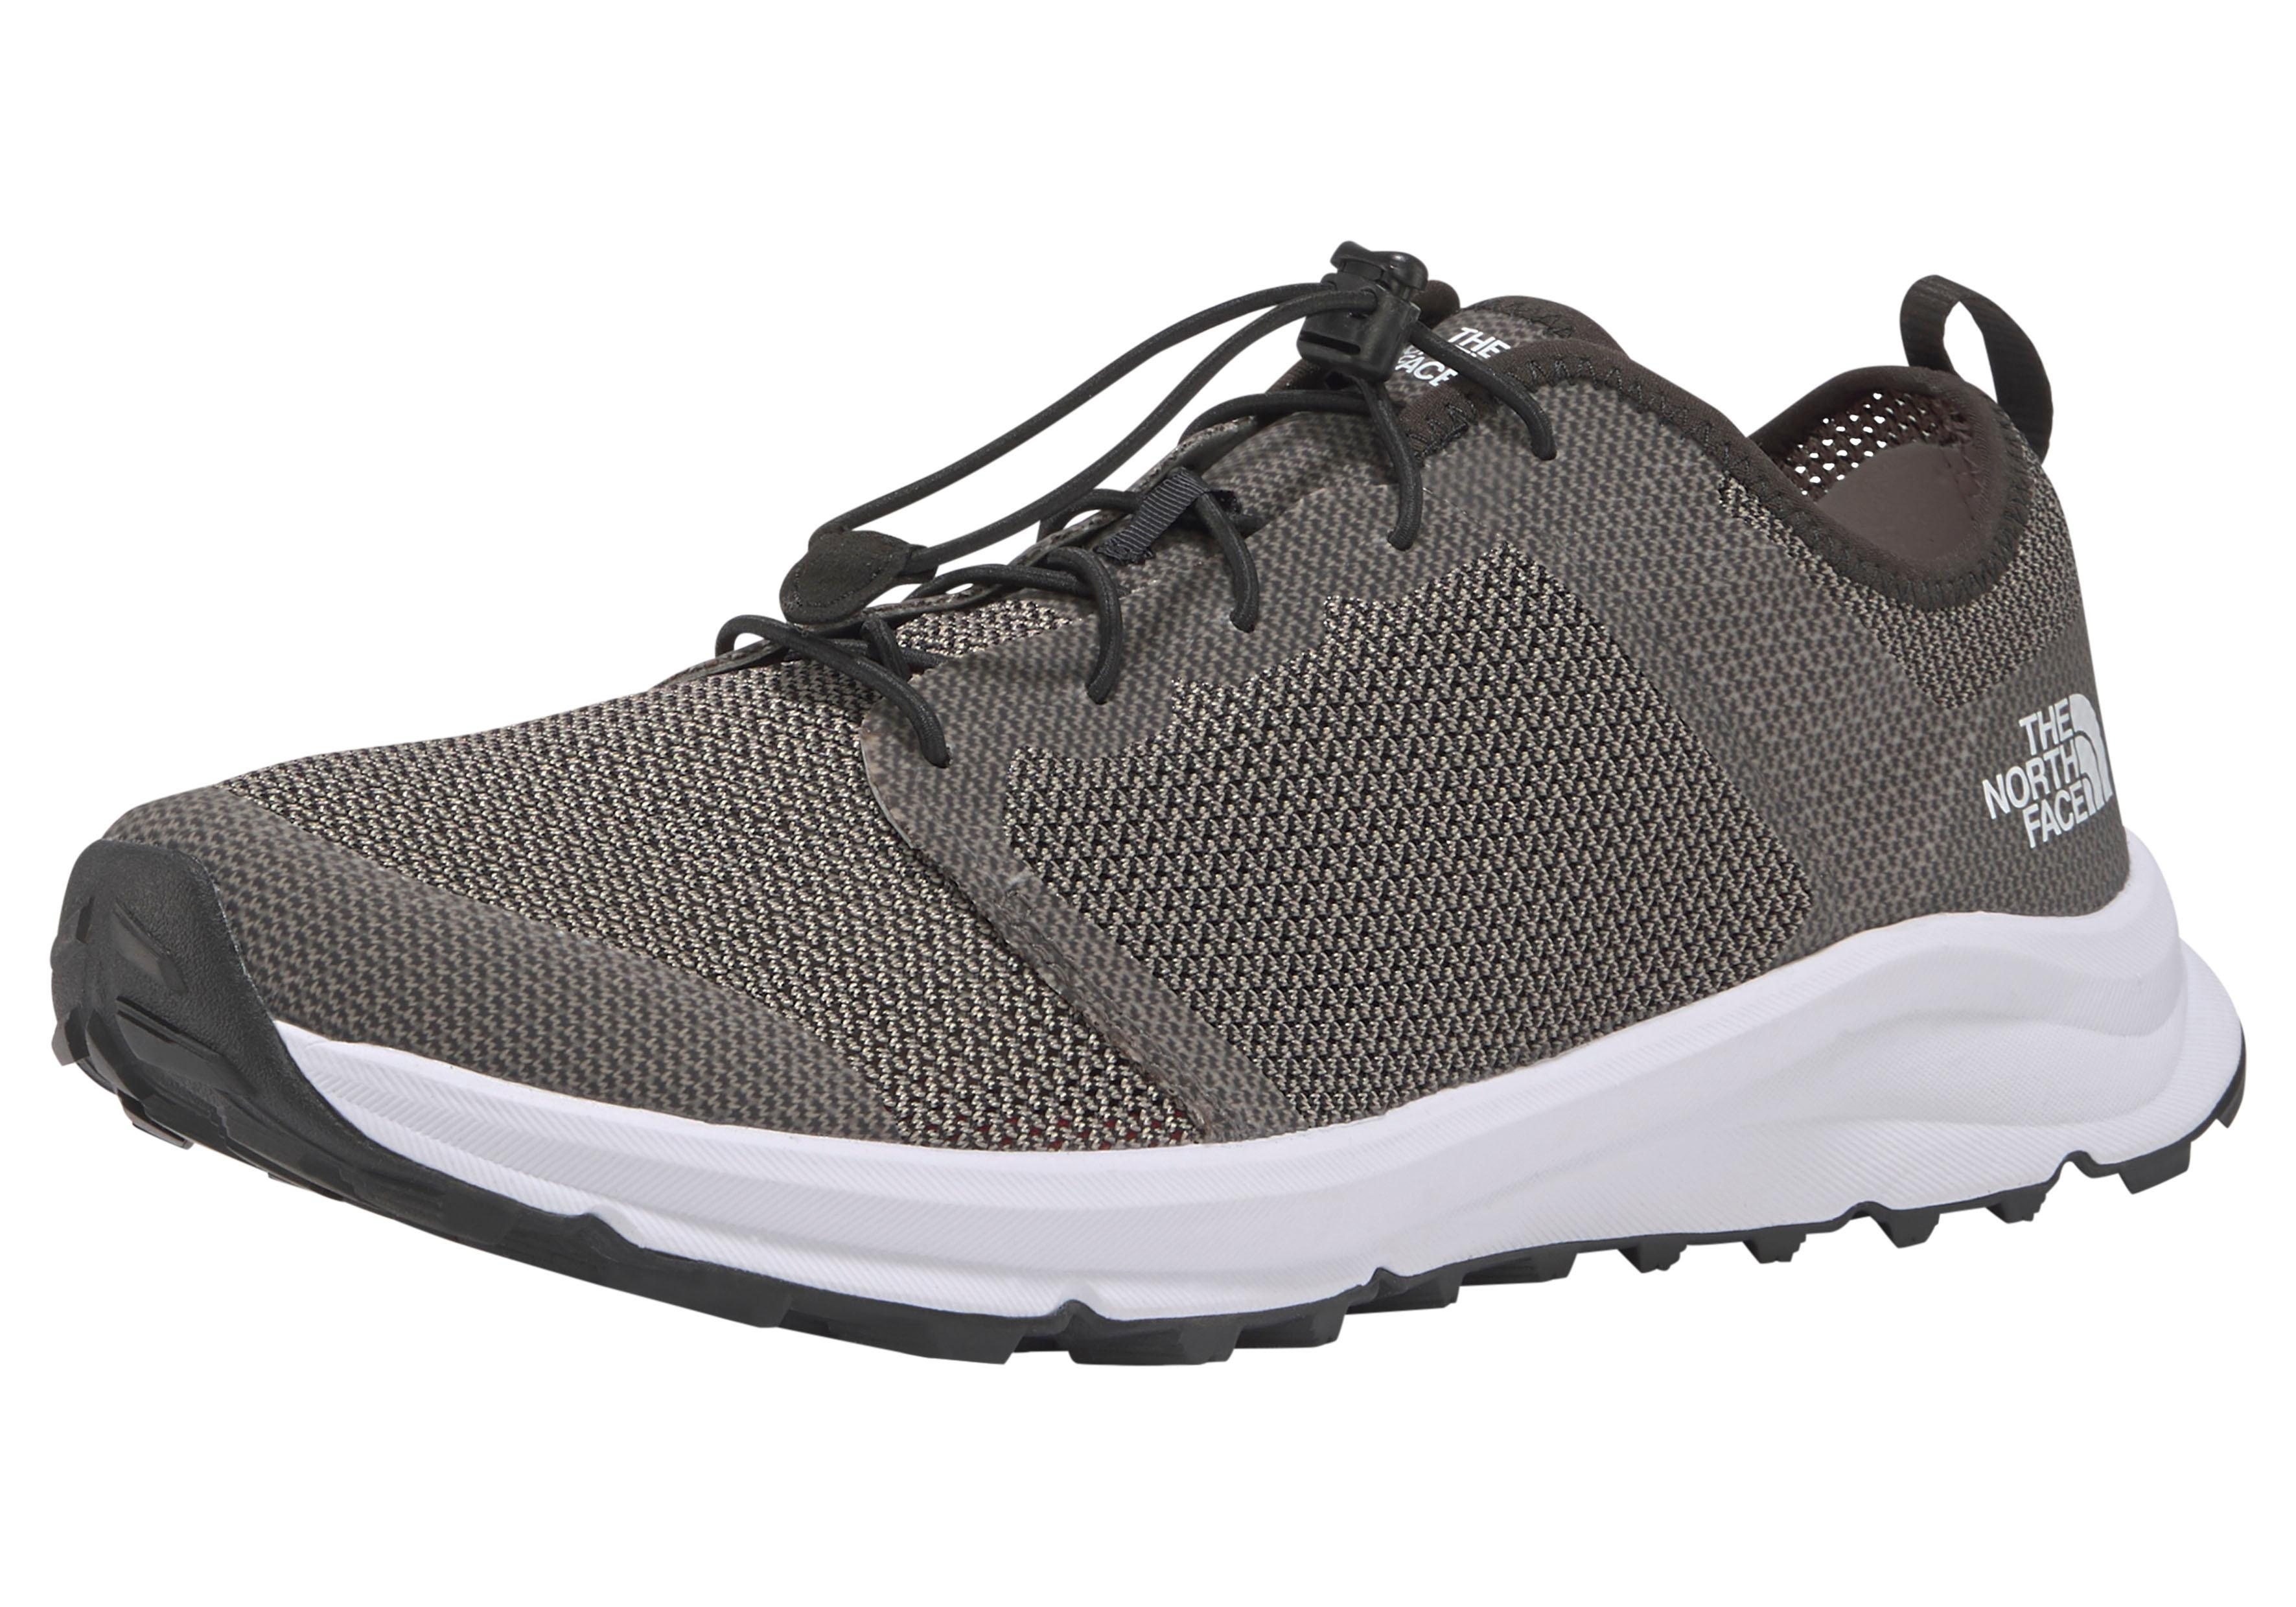 The North Face Wanderschuh M LITEWAVE FLOW LACE II | Schuhe > Outdoorschuhe > Wanderschuhe | The North Face